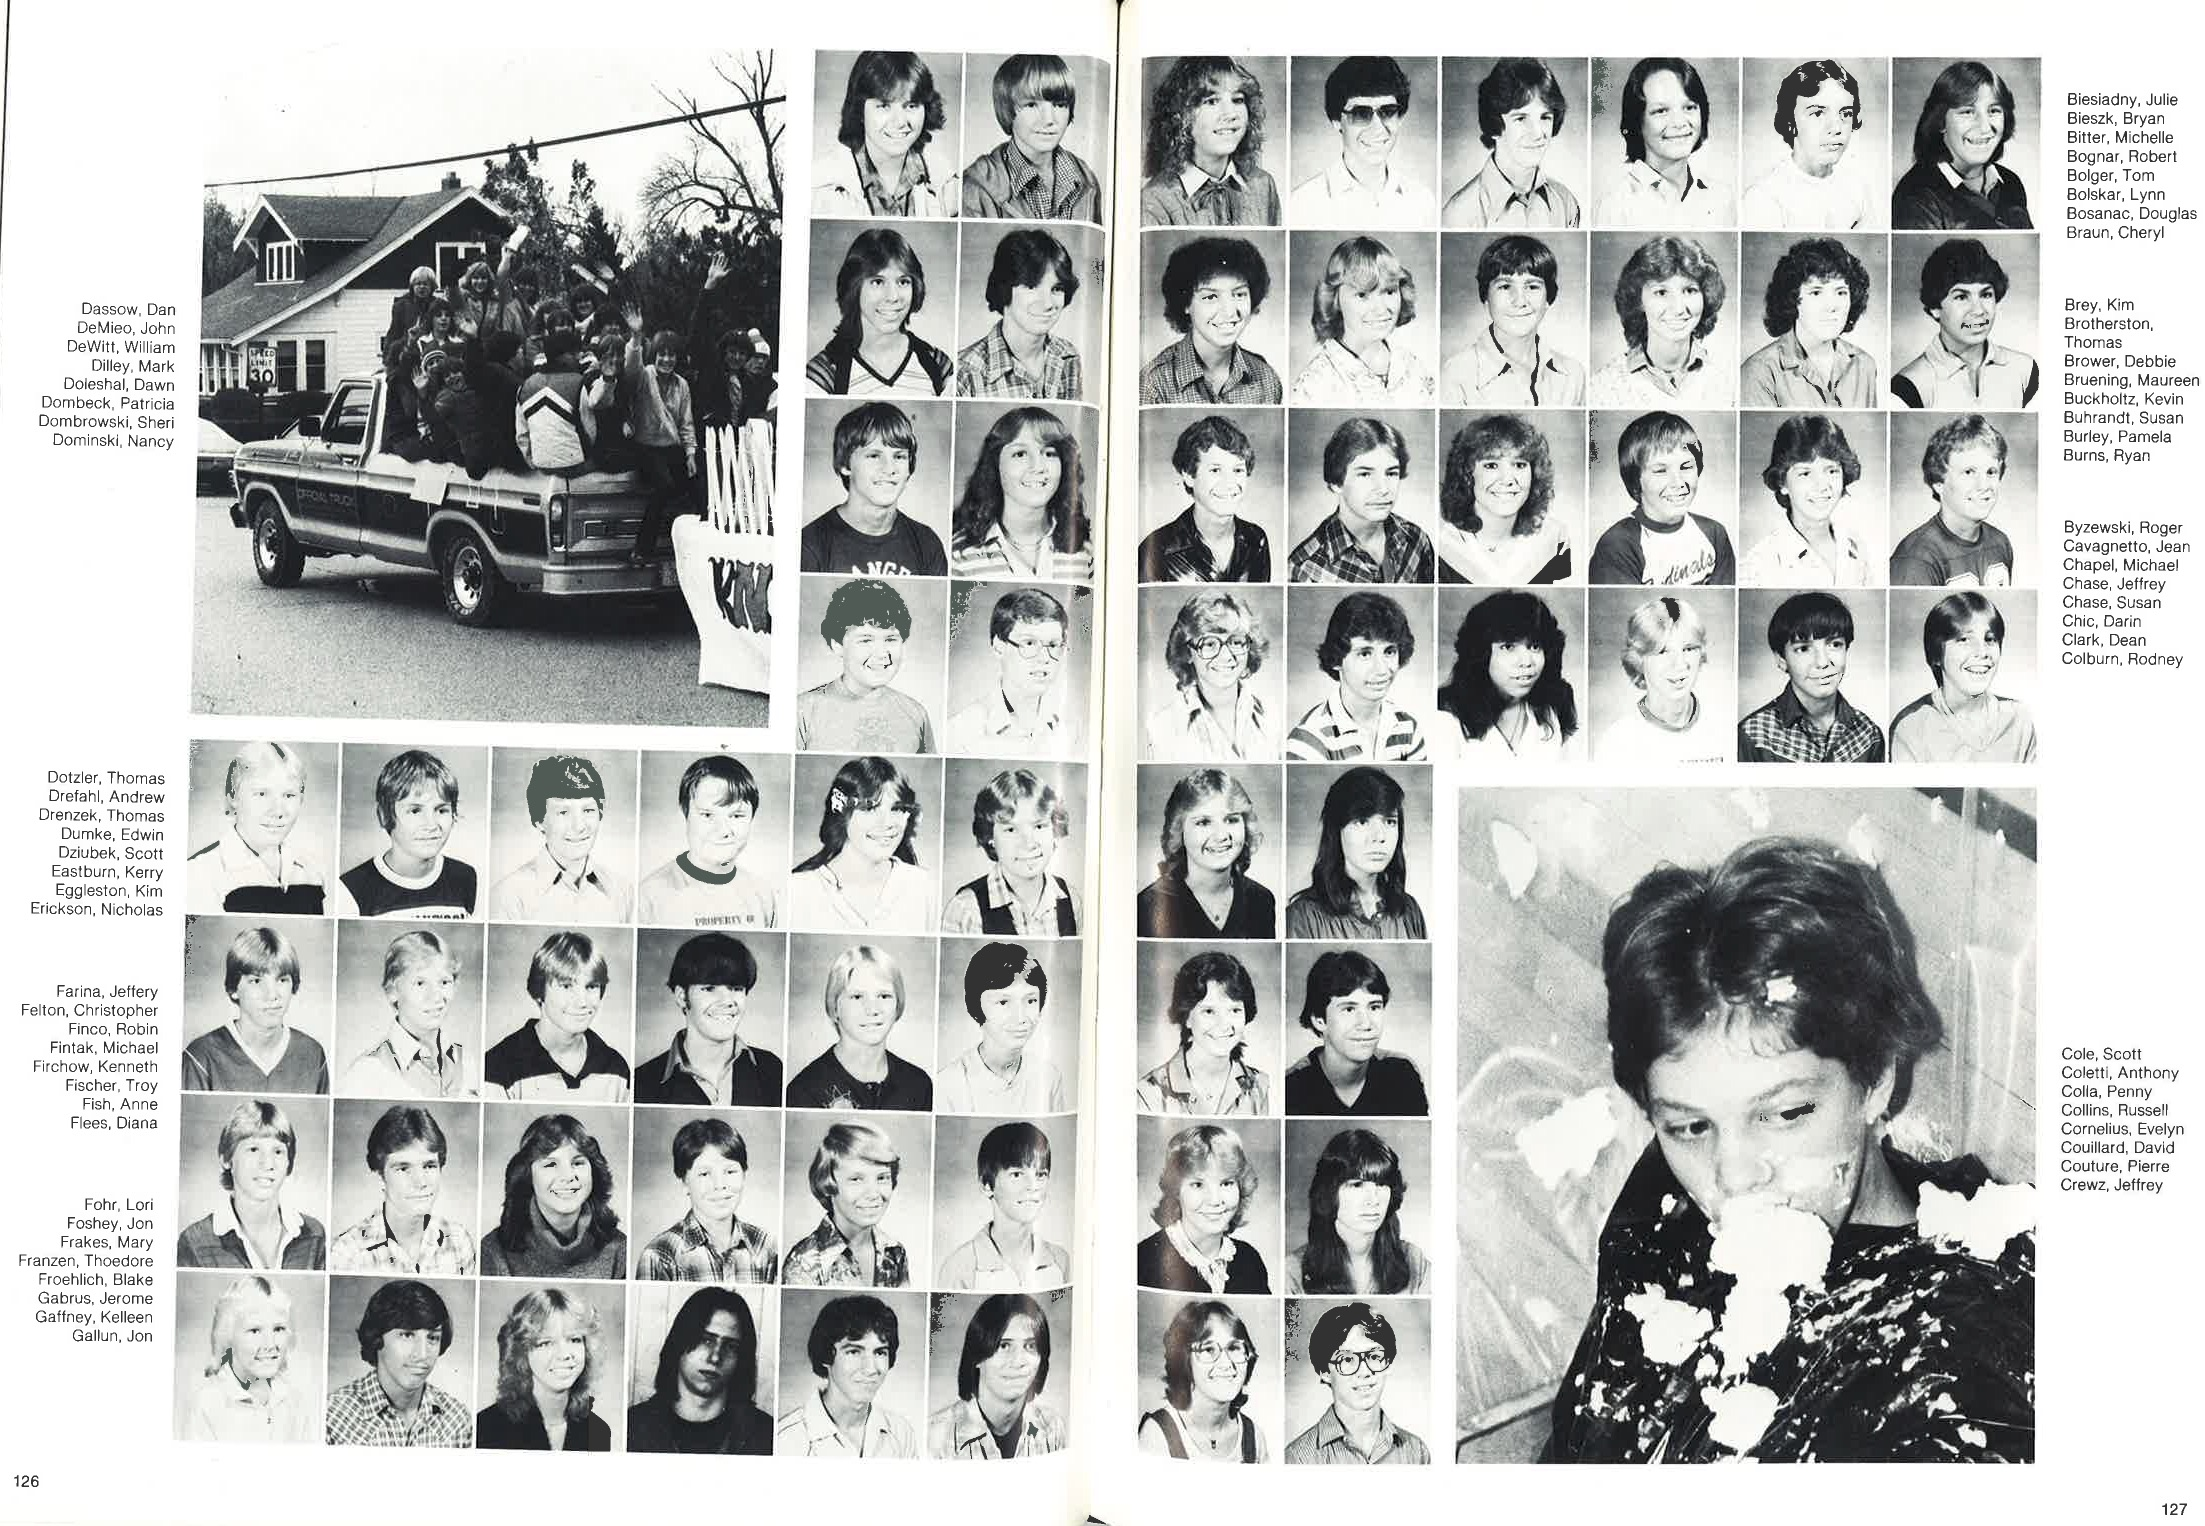 1981_Yearbook_126.jpg